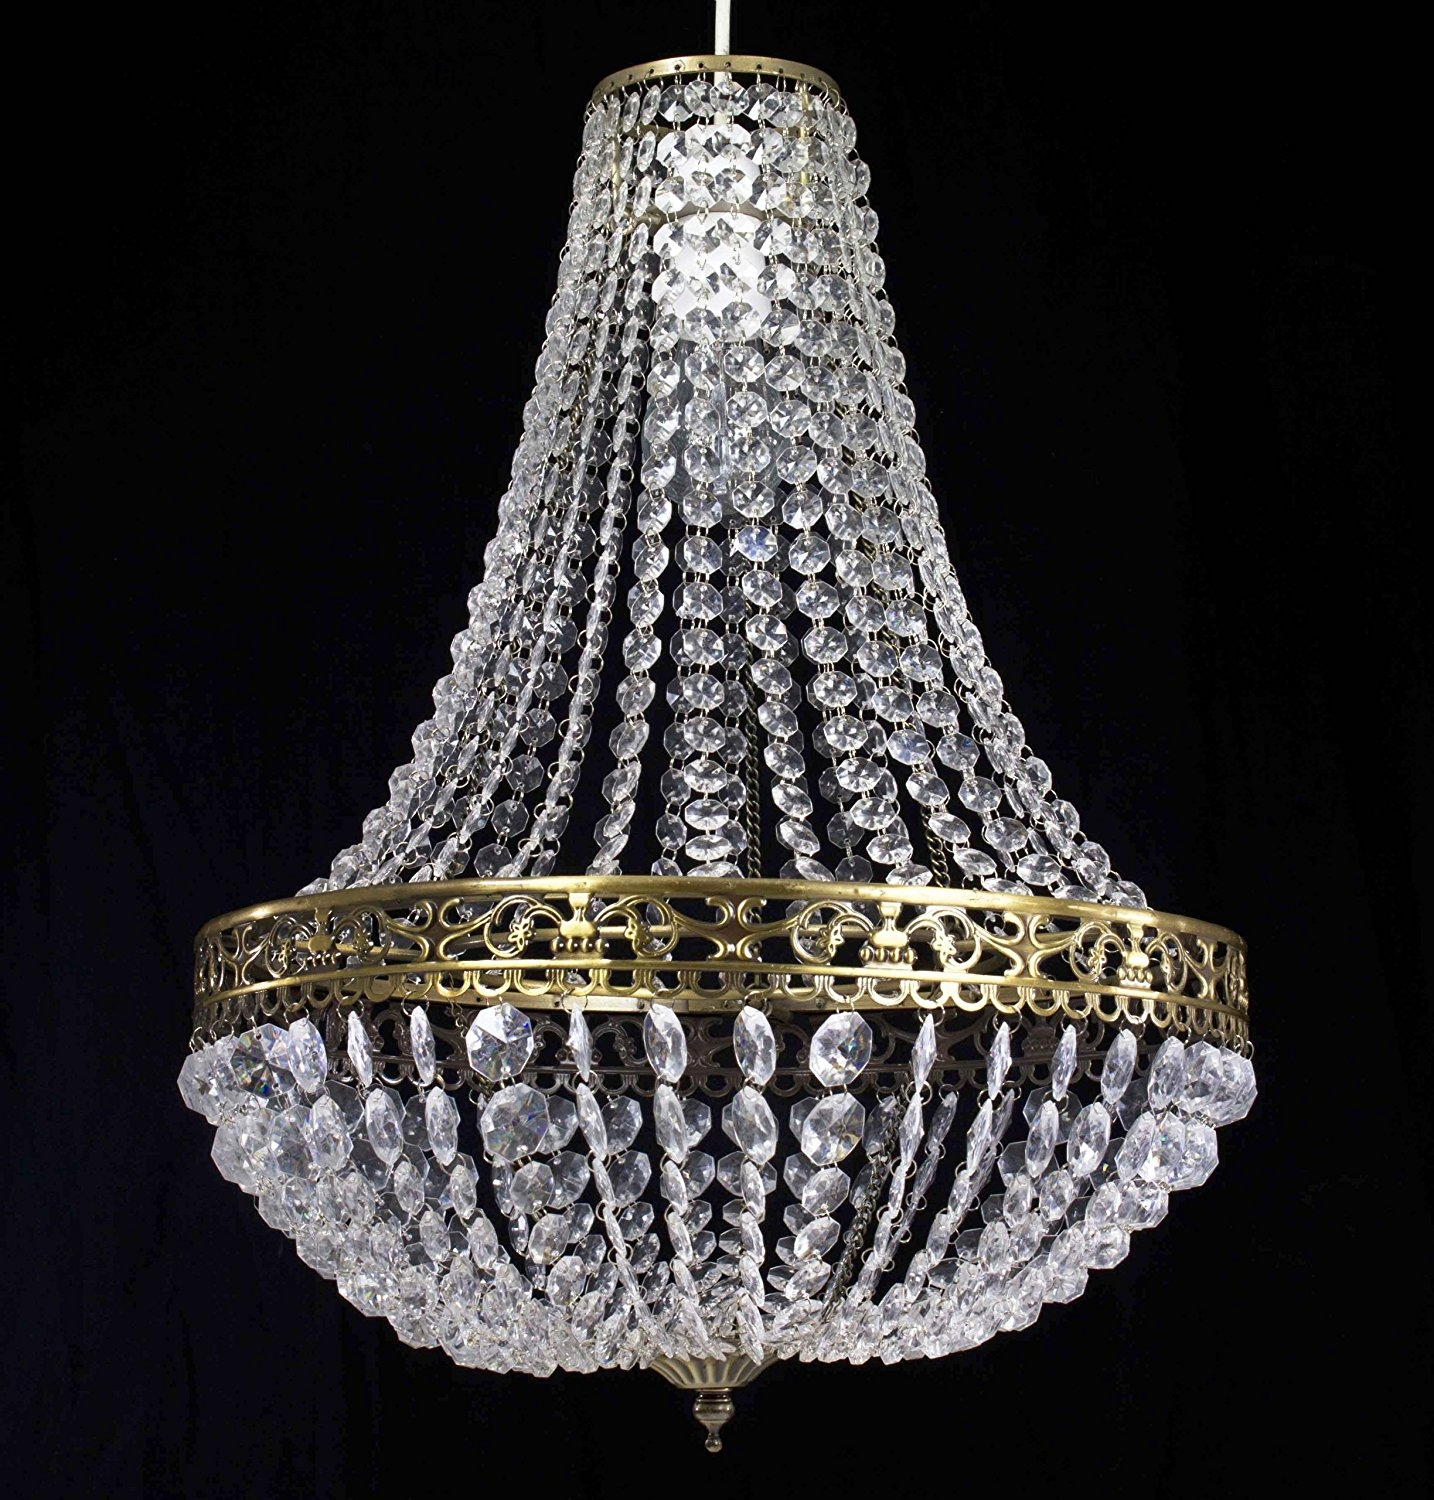 Chandelier Style Clear Acrylic Chrome Ceiling Light Shade Easy Fit Regarding Light Fitting Chandeliers (Image 9 of 25)